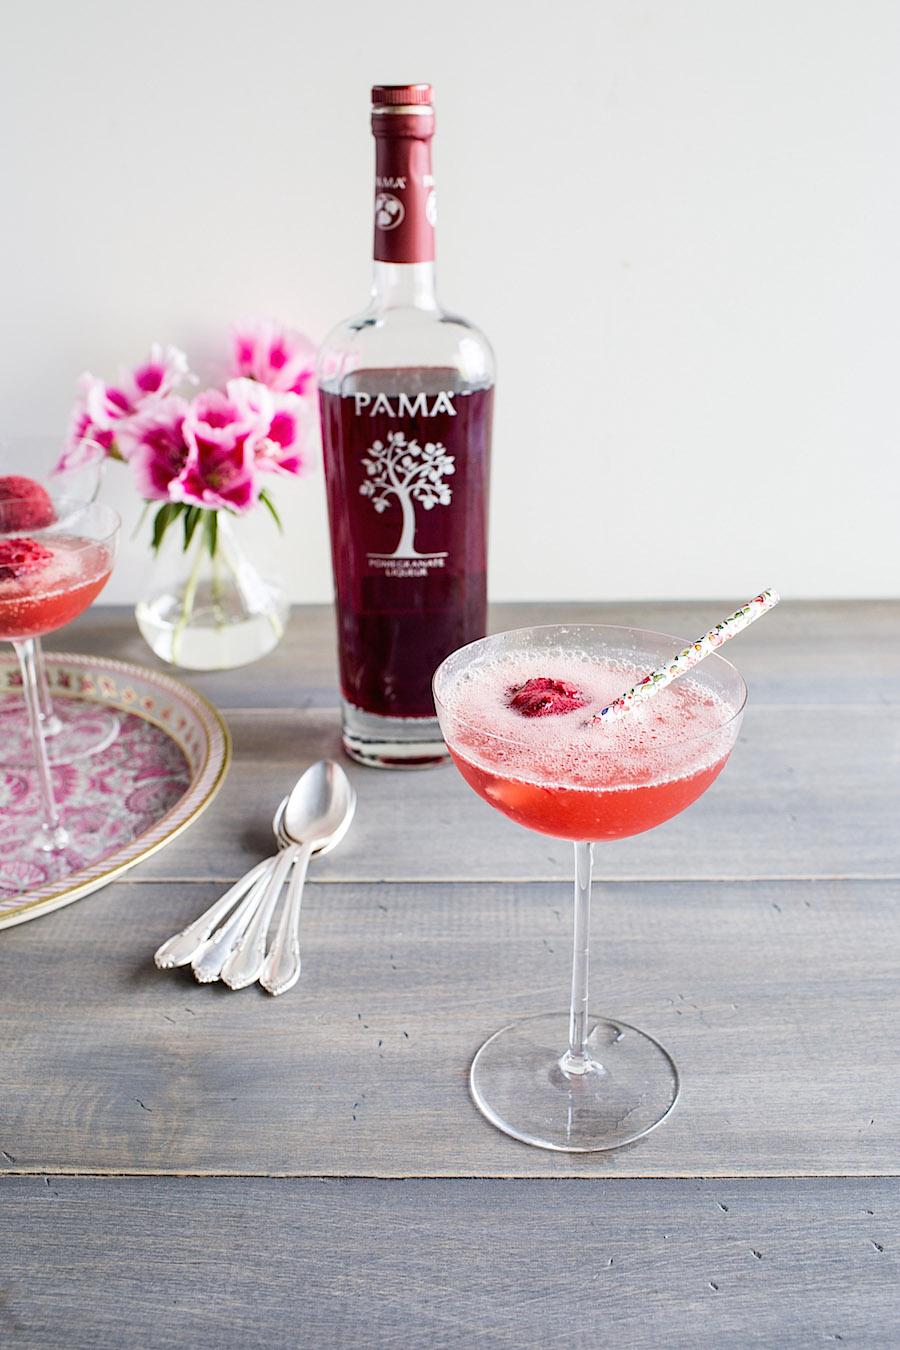 Cherry PAMA Liqueur Sorbet Floats